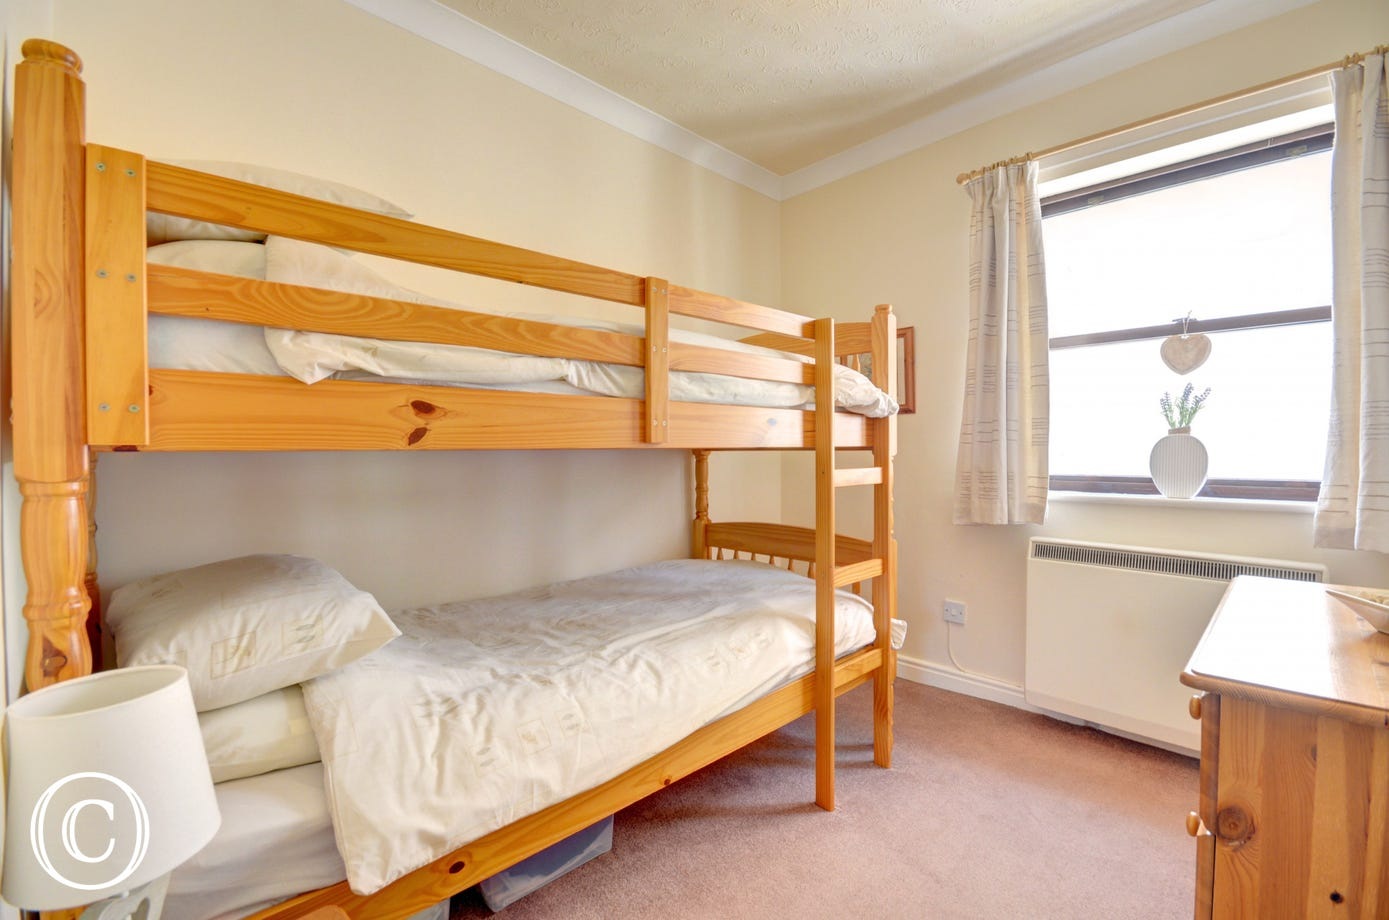 Twin bedroom with bunk beds and a chest of drawers for storage.